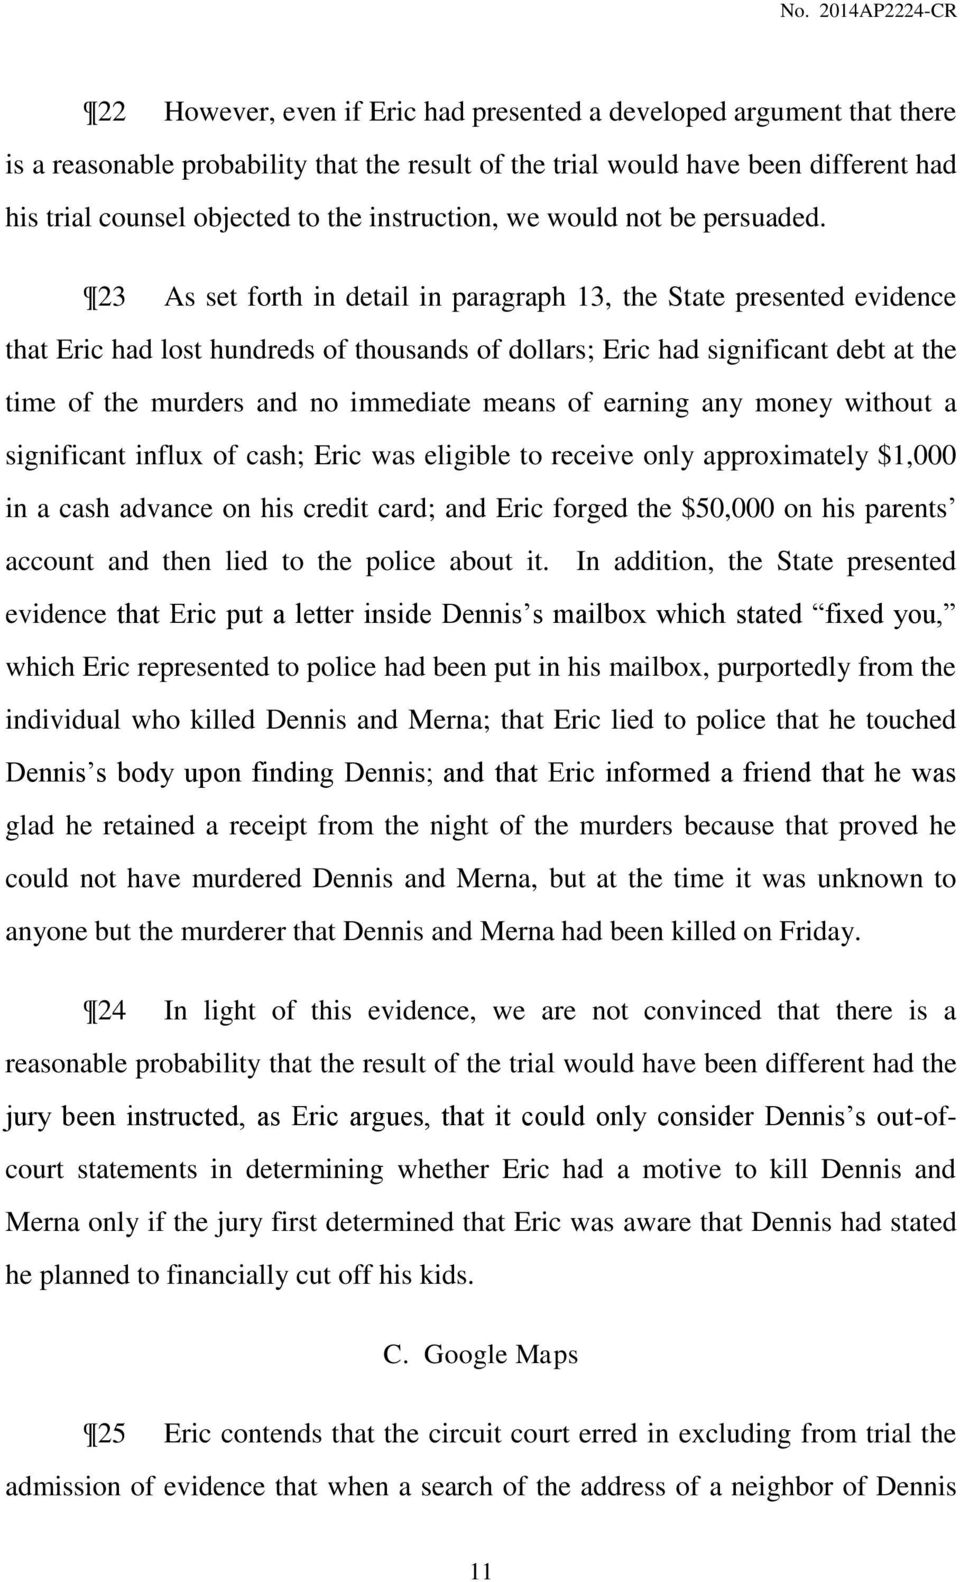 23 As set forth in detail in paragraph 13, the State presented evidence that Eric had lost hundreds of thousands of dollars; Eric had significant debt at the time of the murders and no immediate